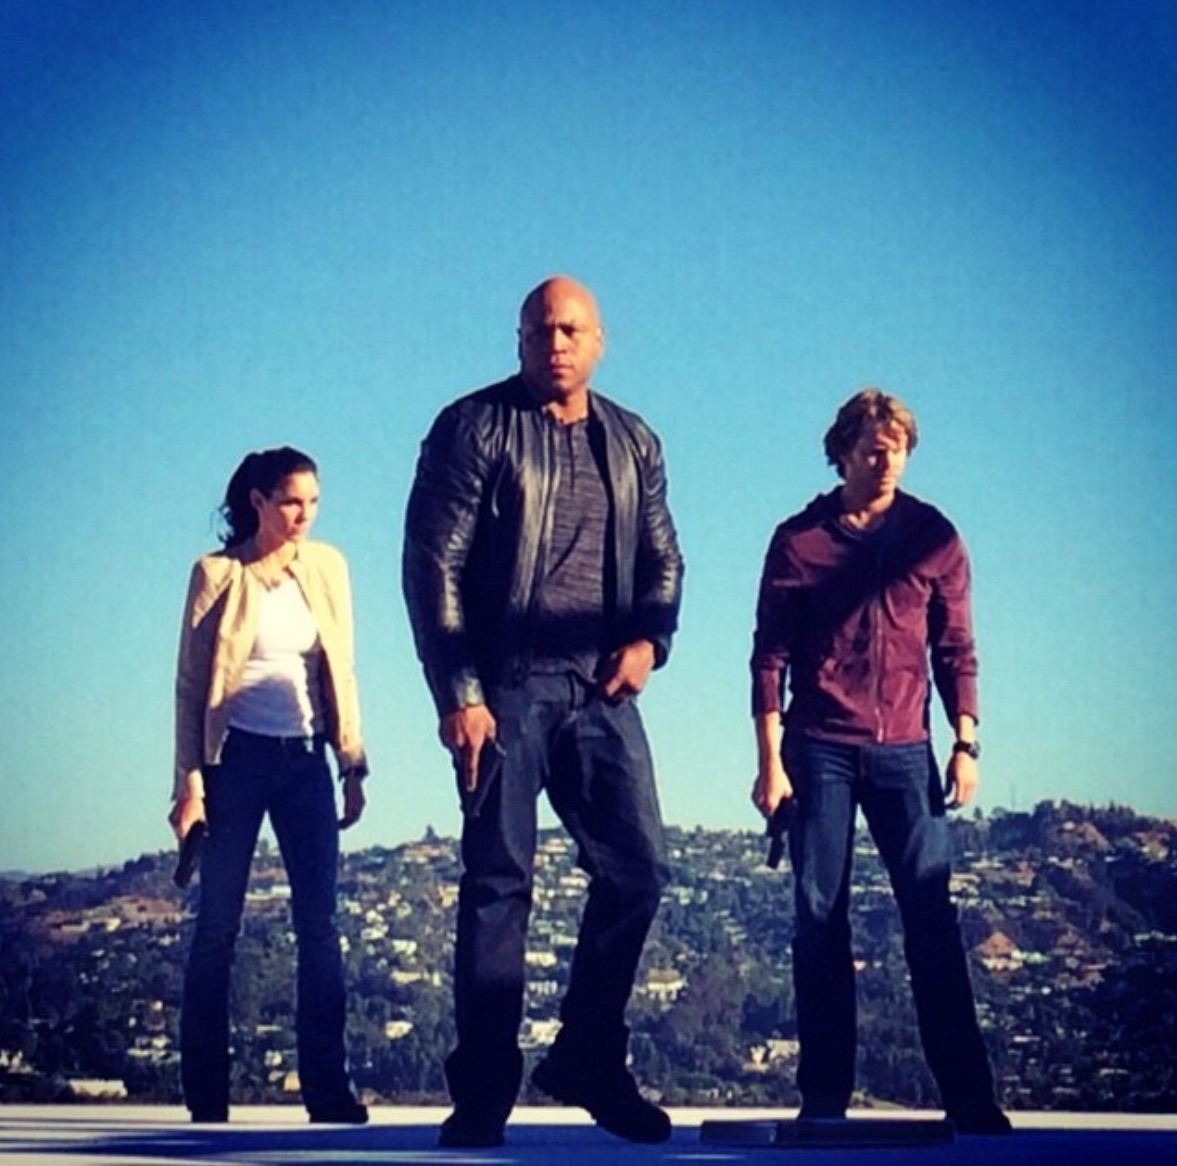 Are deeks and kensi dating 2